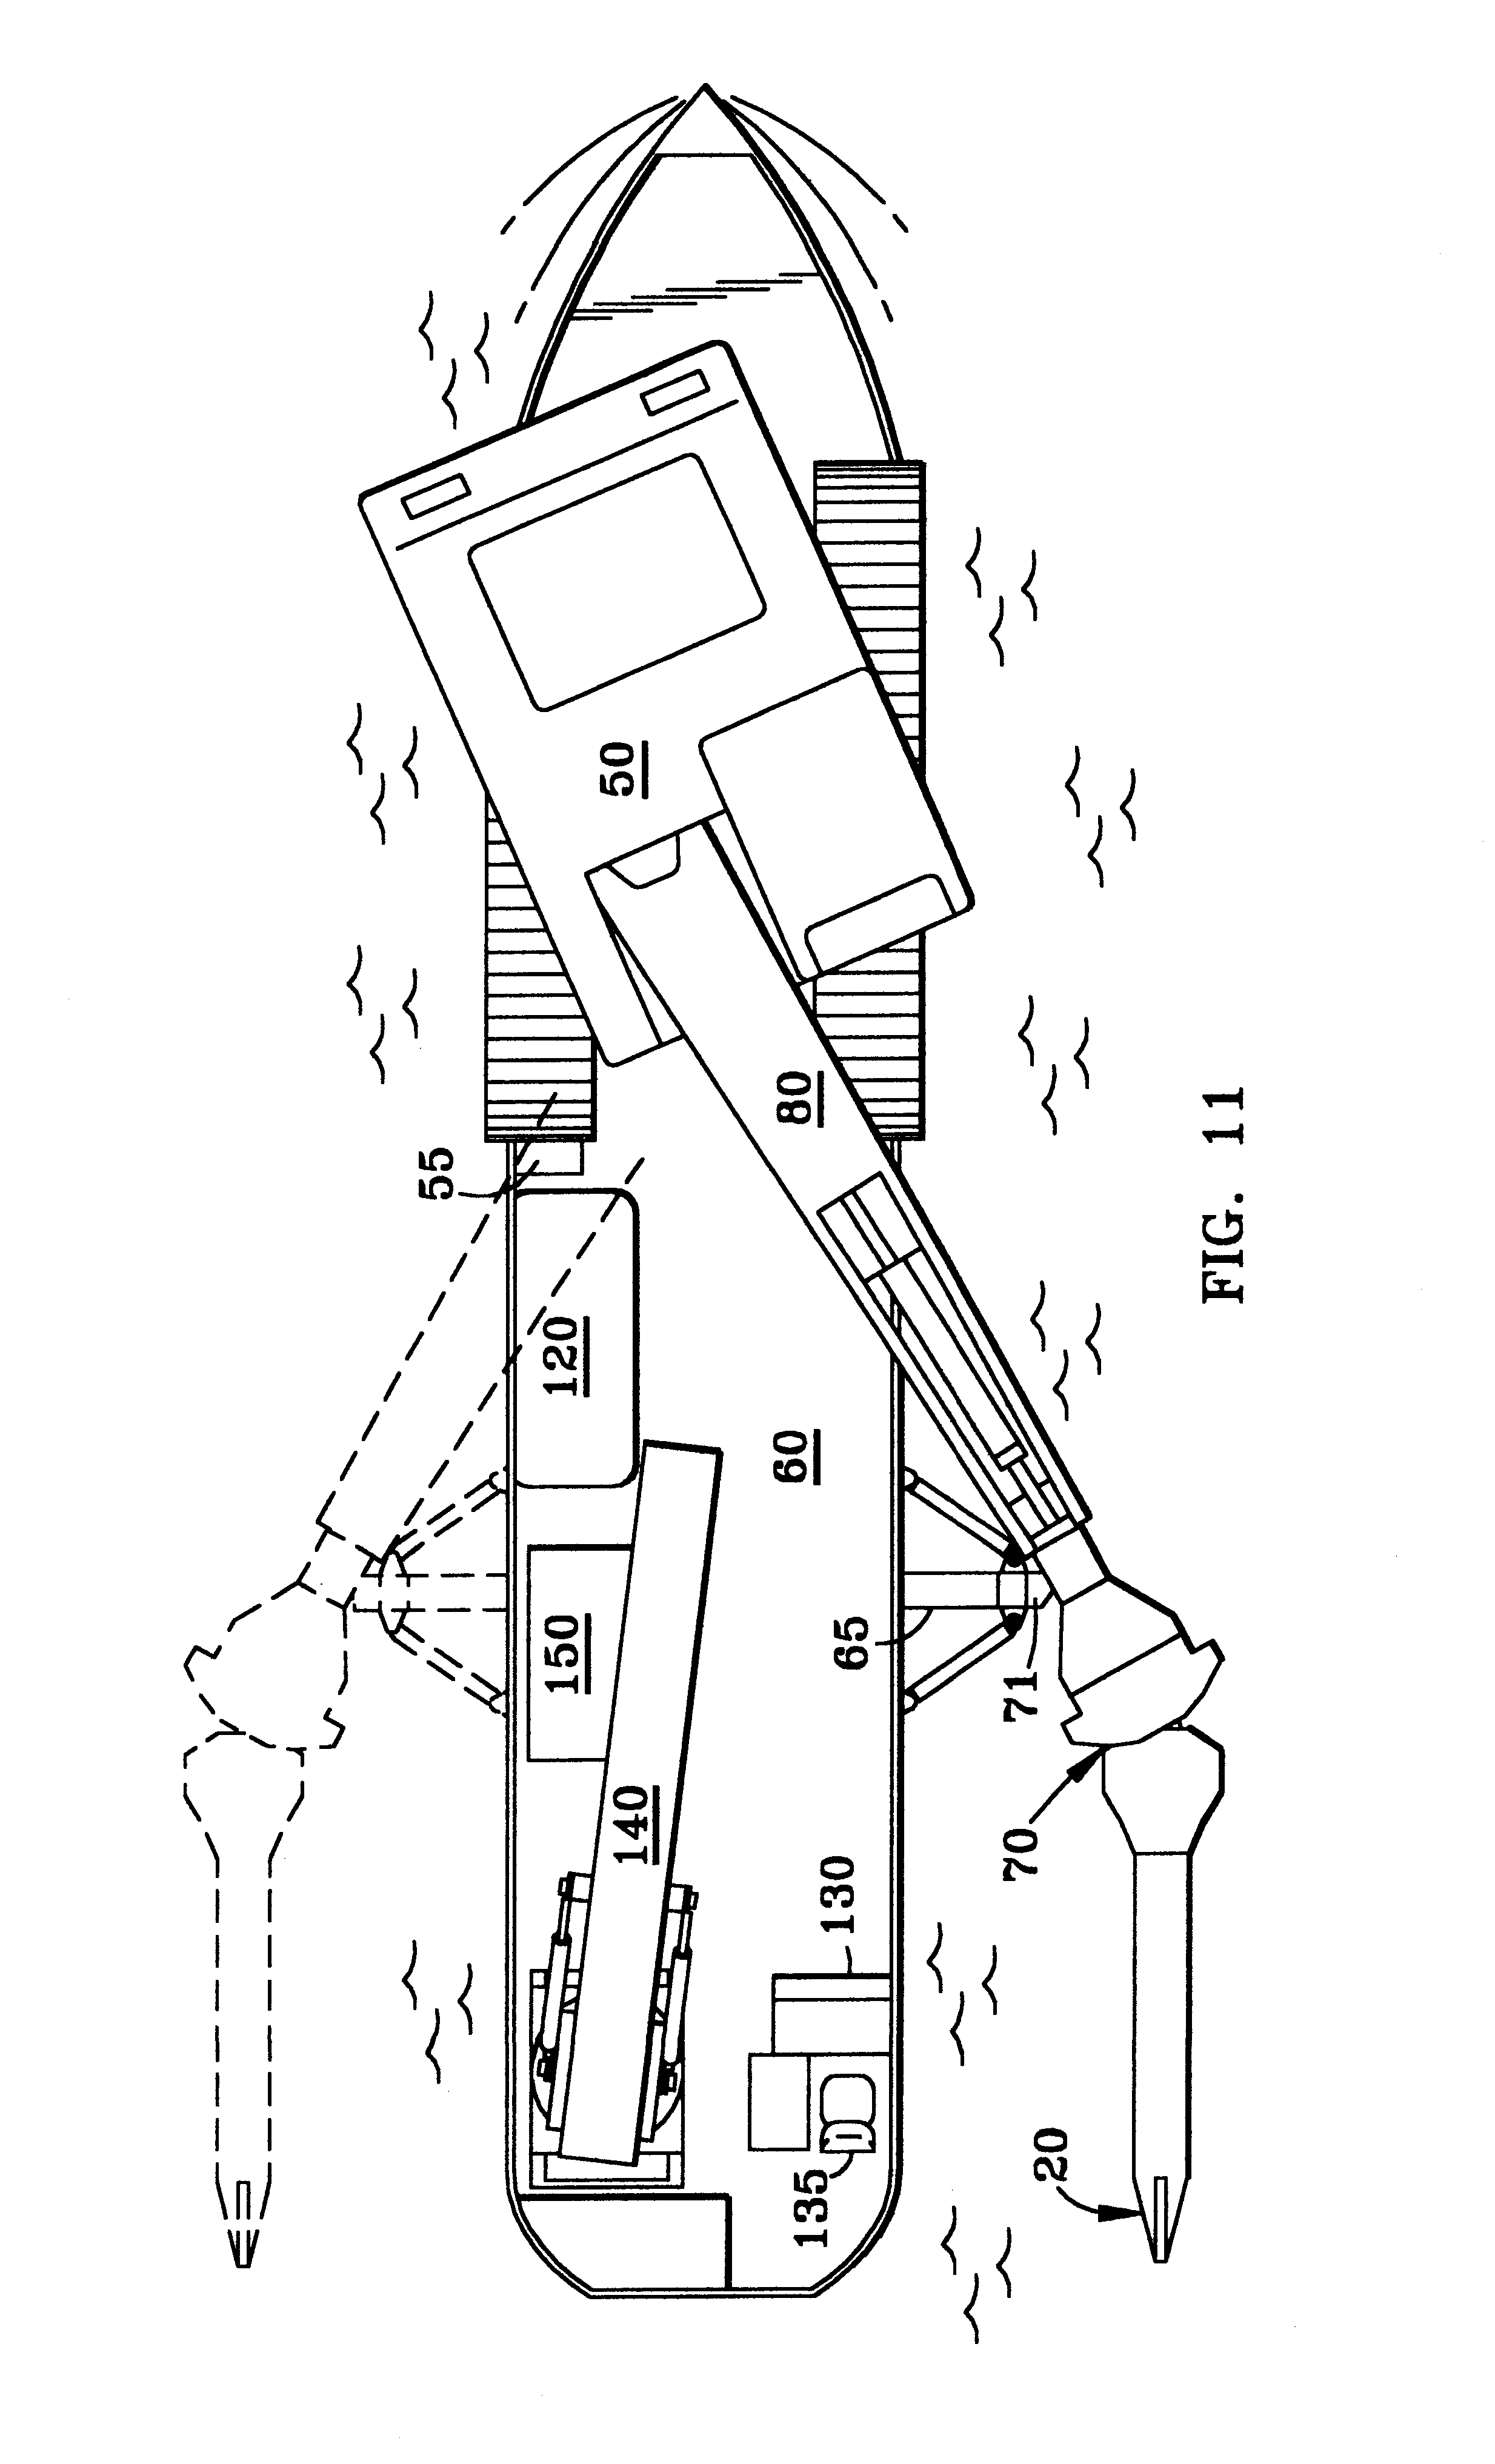 patent us6193440 - railroad cable plow apparatus